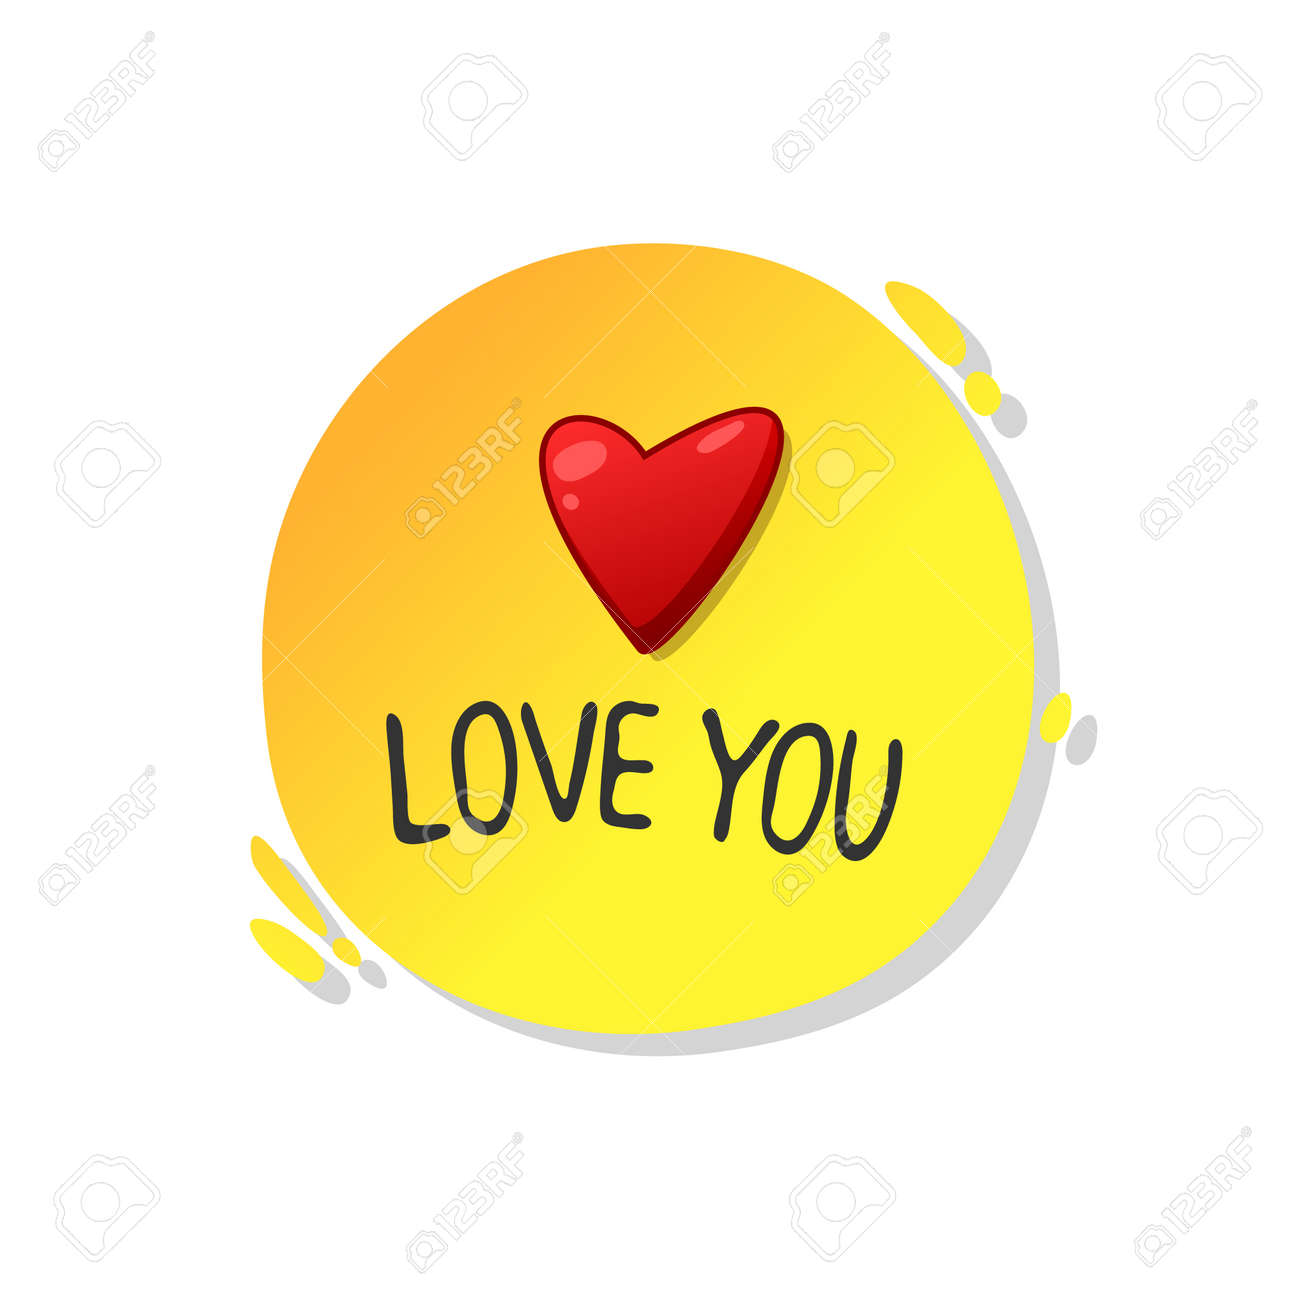 Love you, minimalistic illustration for a card.Cartoon contour illustration in a vector. - 159520016